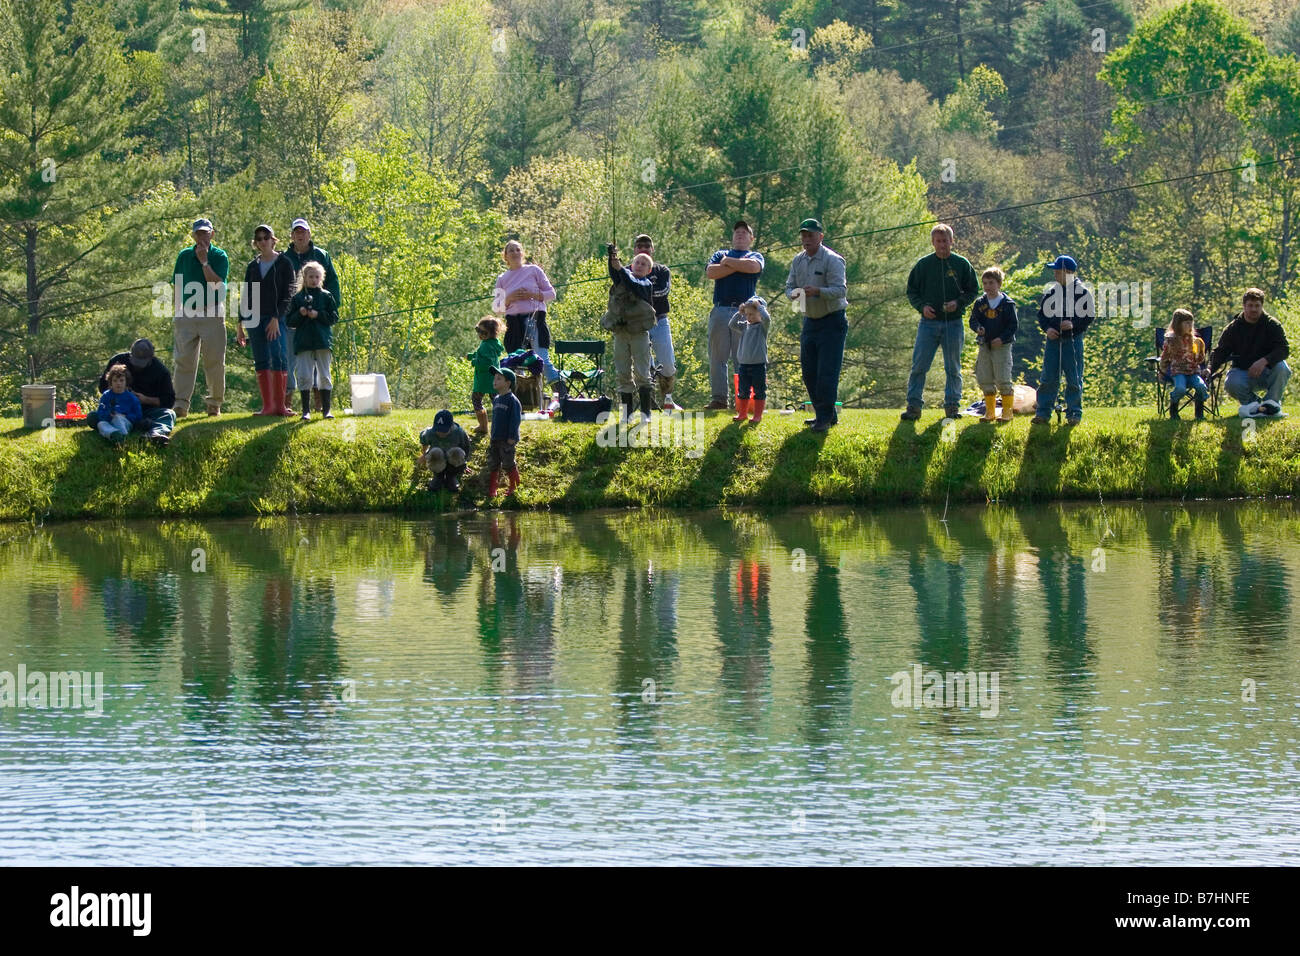 Families gathered around pond for summer morning fishing derby, reflection - Stock Image